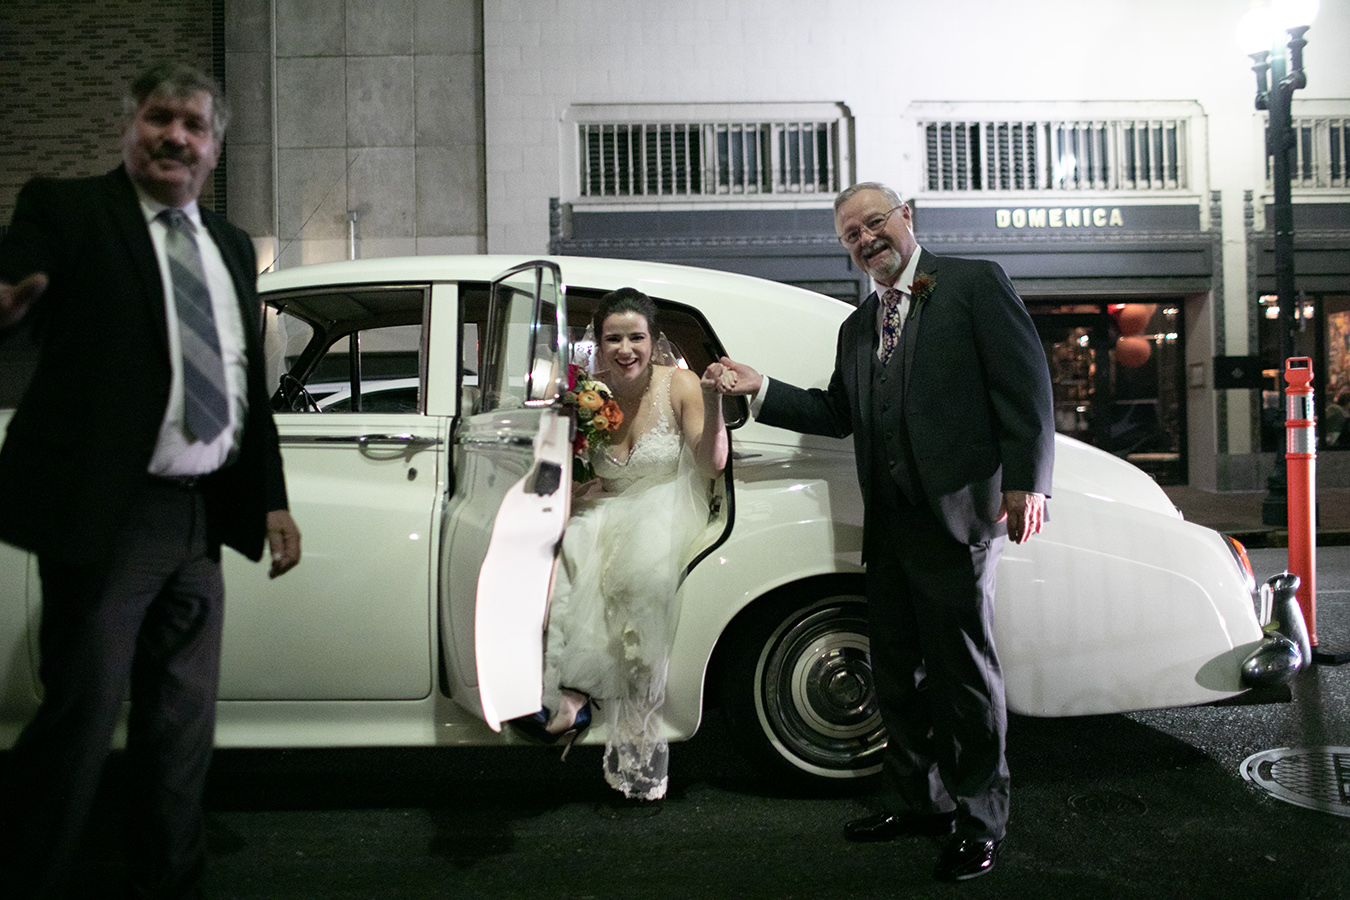 Margaret arrives at the church in a Vintage Rolls Royce from Big Easy Limos.